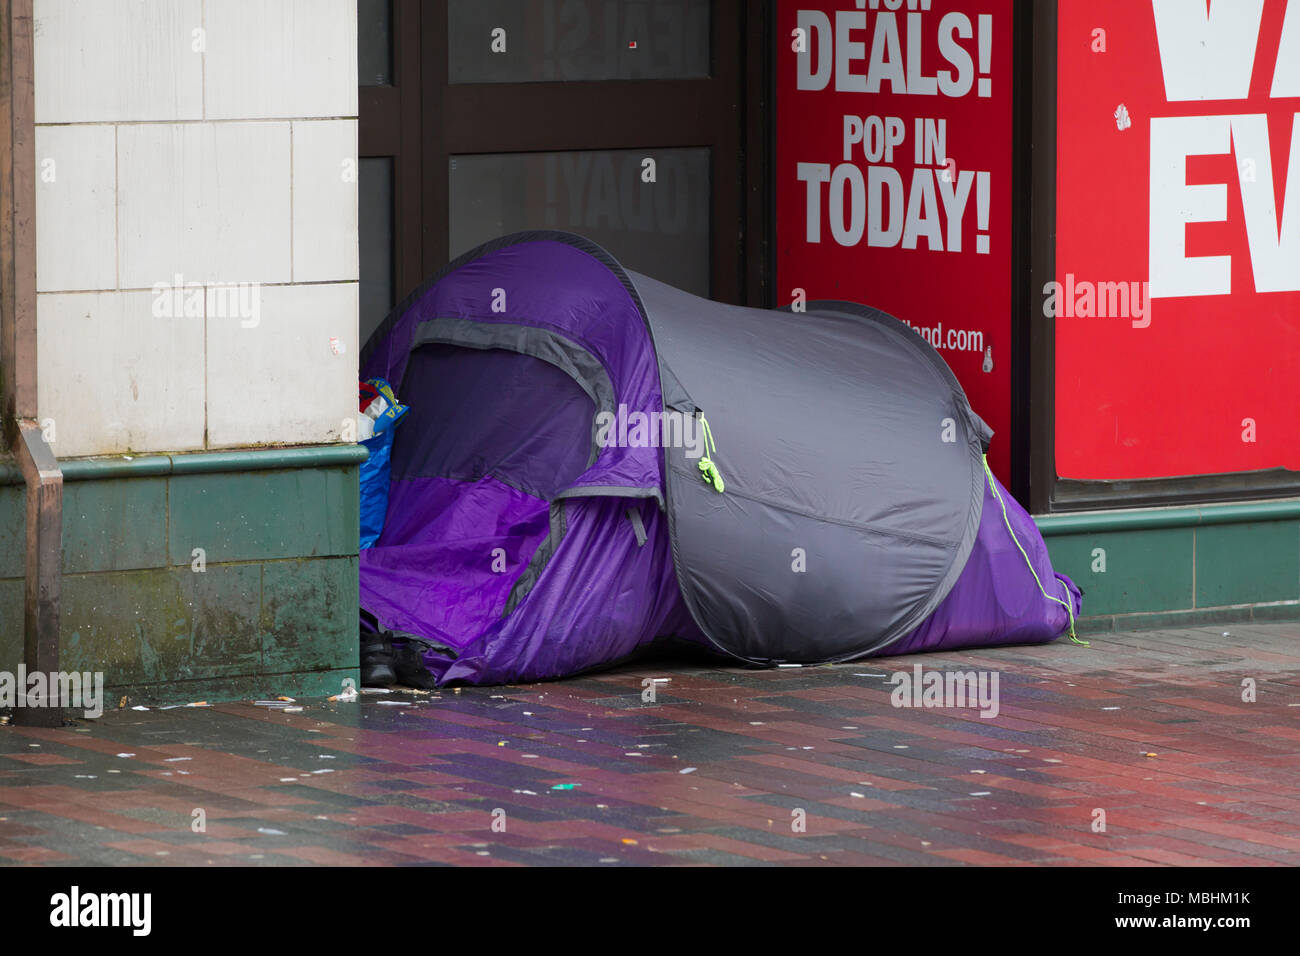 Northampton. 11th Apr, 2018. UK Weather: Another dull miserable day for the homeless having to live in a tent in Abington Street in the town centre. Credit: Keith J Smith./Alamy Live News Stock Photo